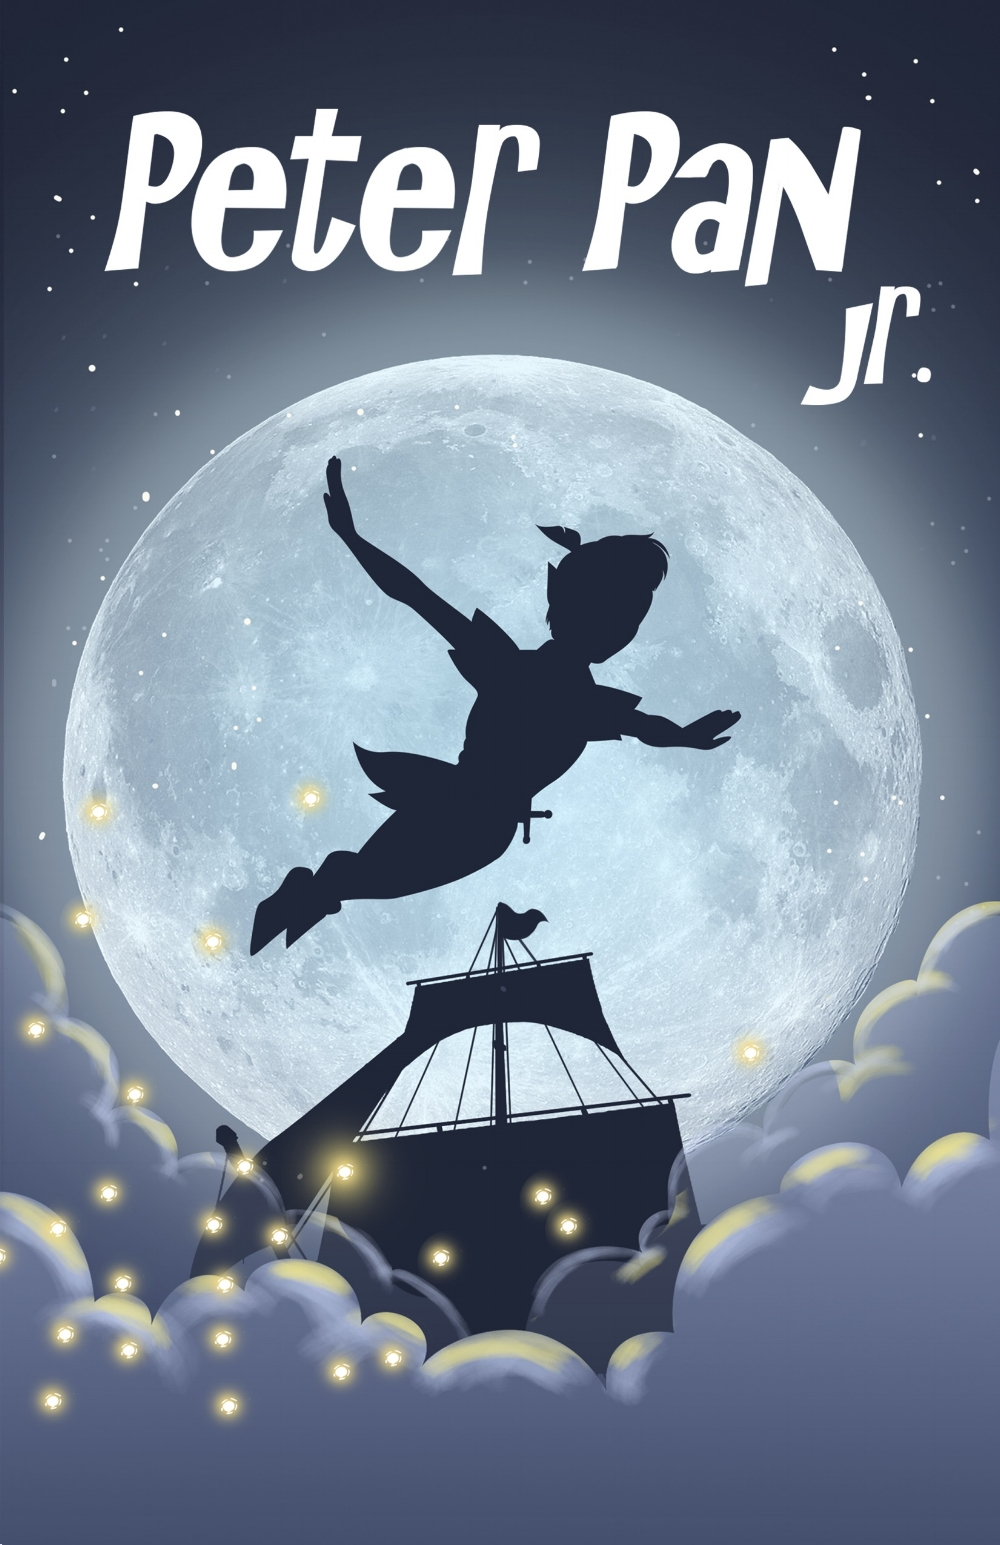 peter pan jr poster.jpg